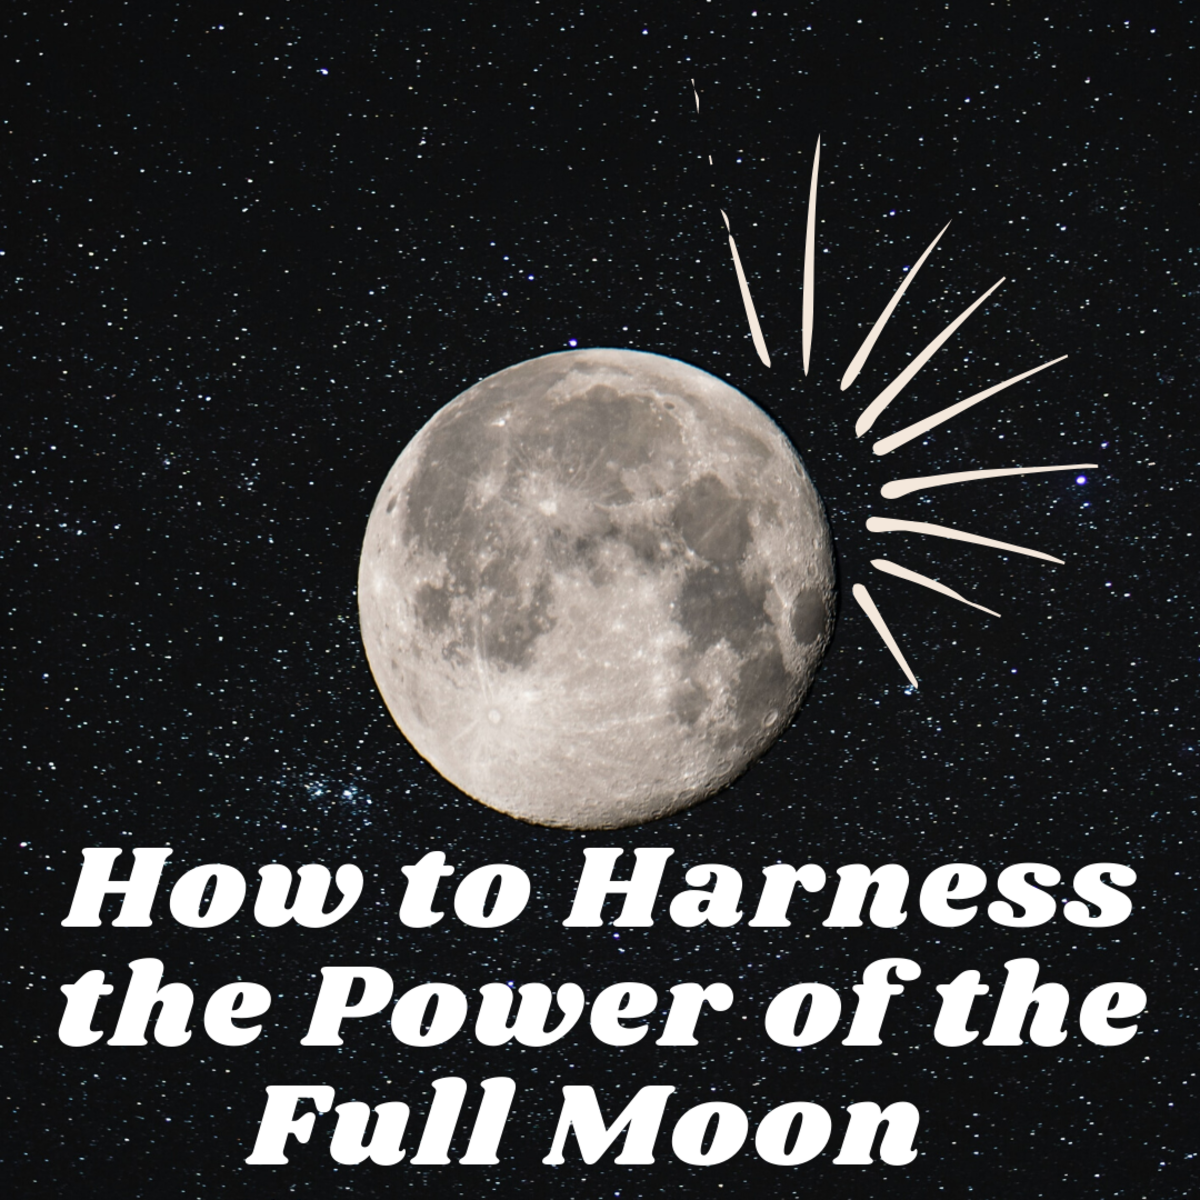 Read on to learn how the magic of the full moon can help you overcome problems in your life.